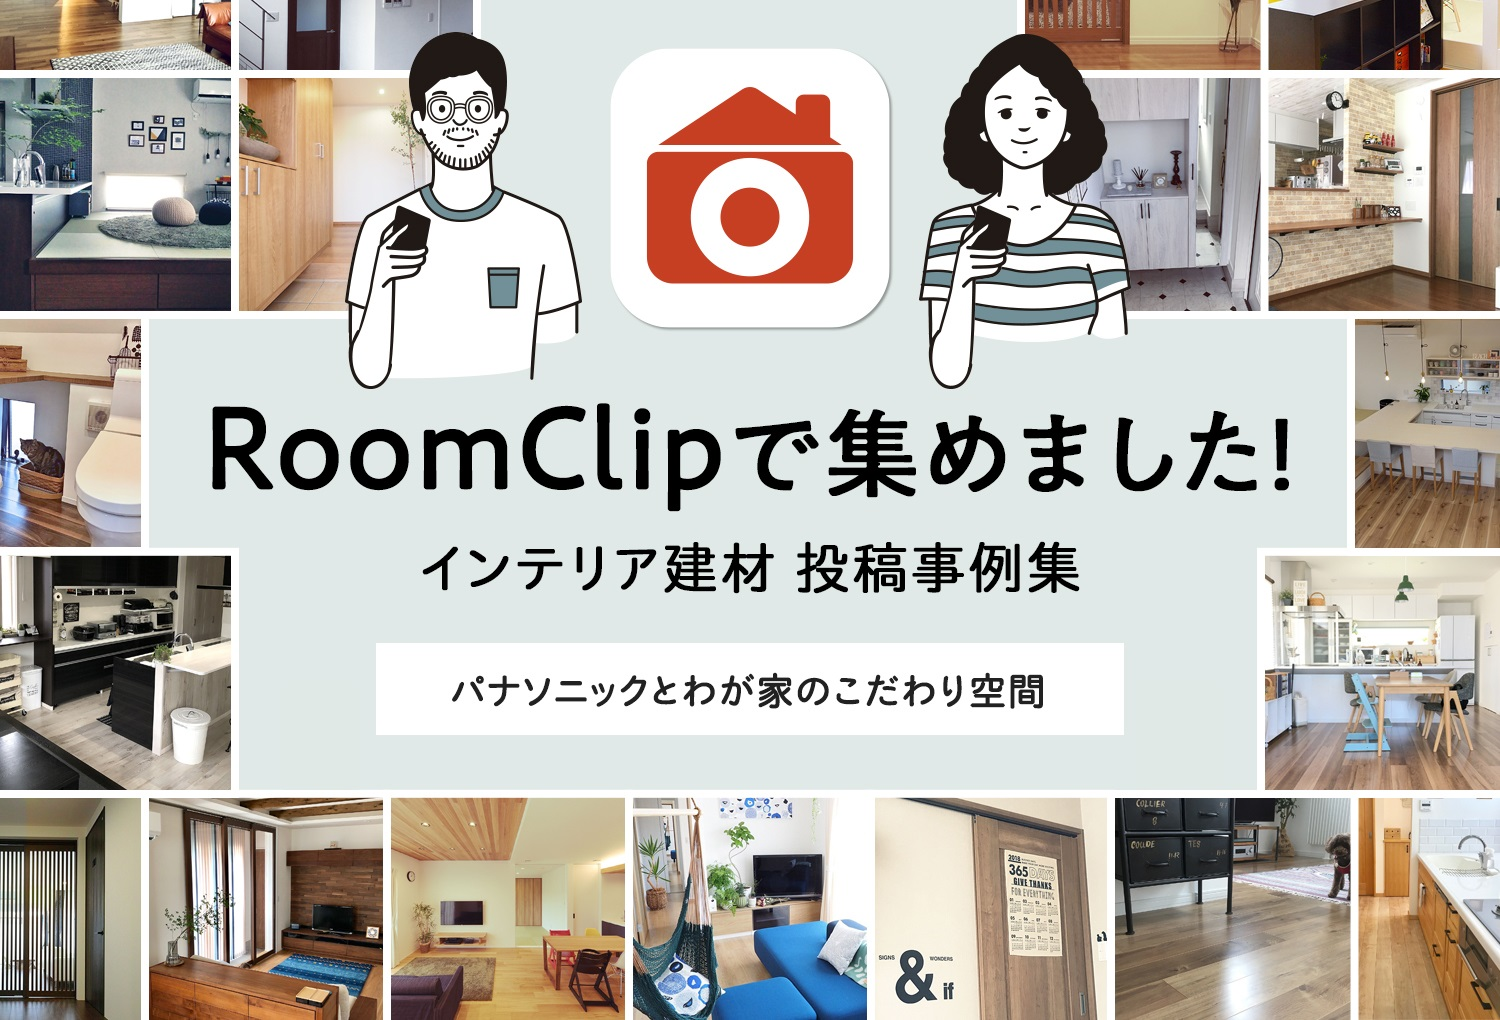 RoomClip投稿キャンペーン